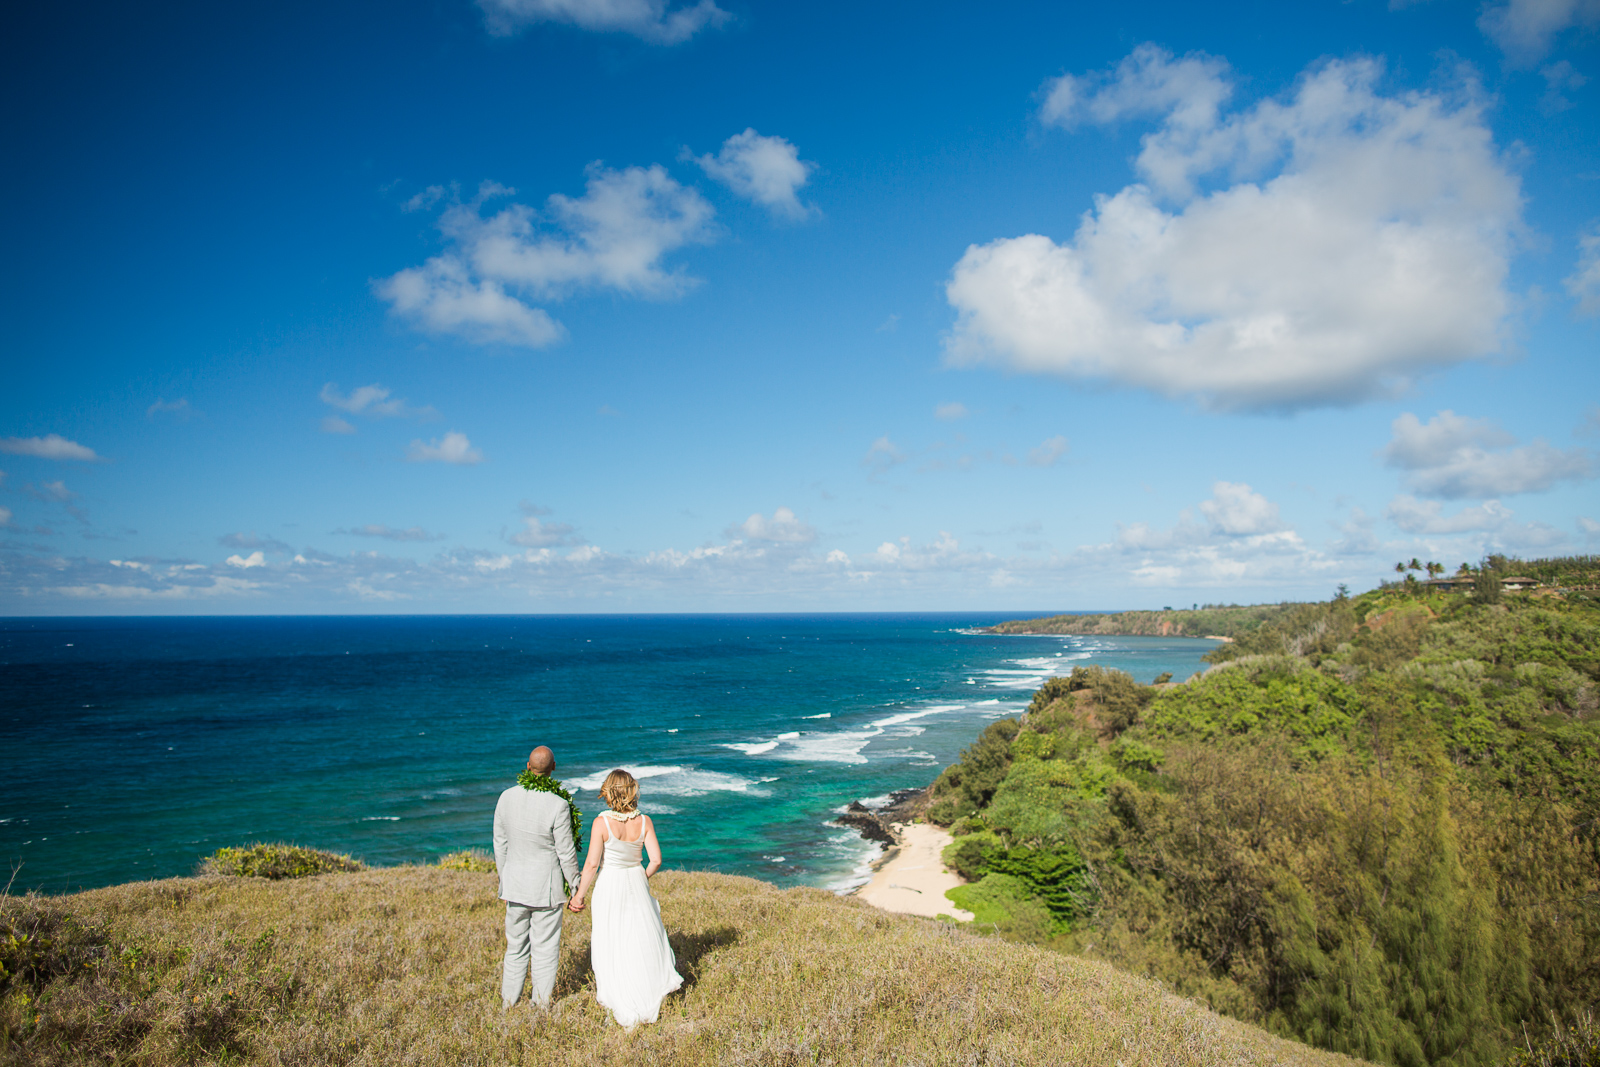 Hawaii Elopement with a Breathtaking View